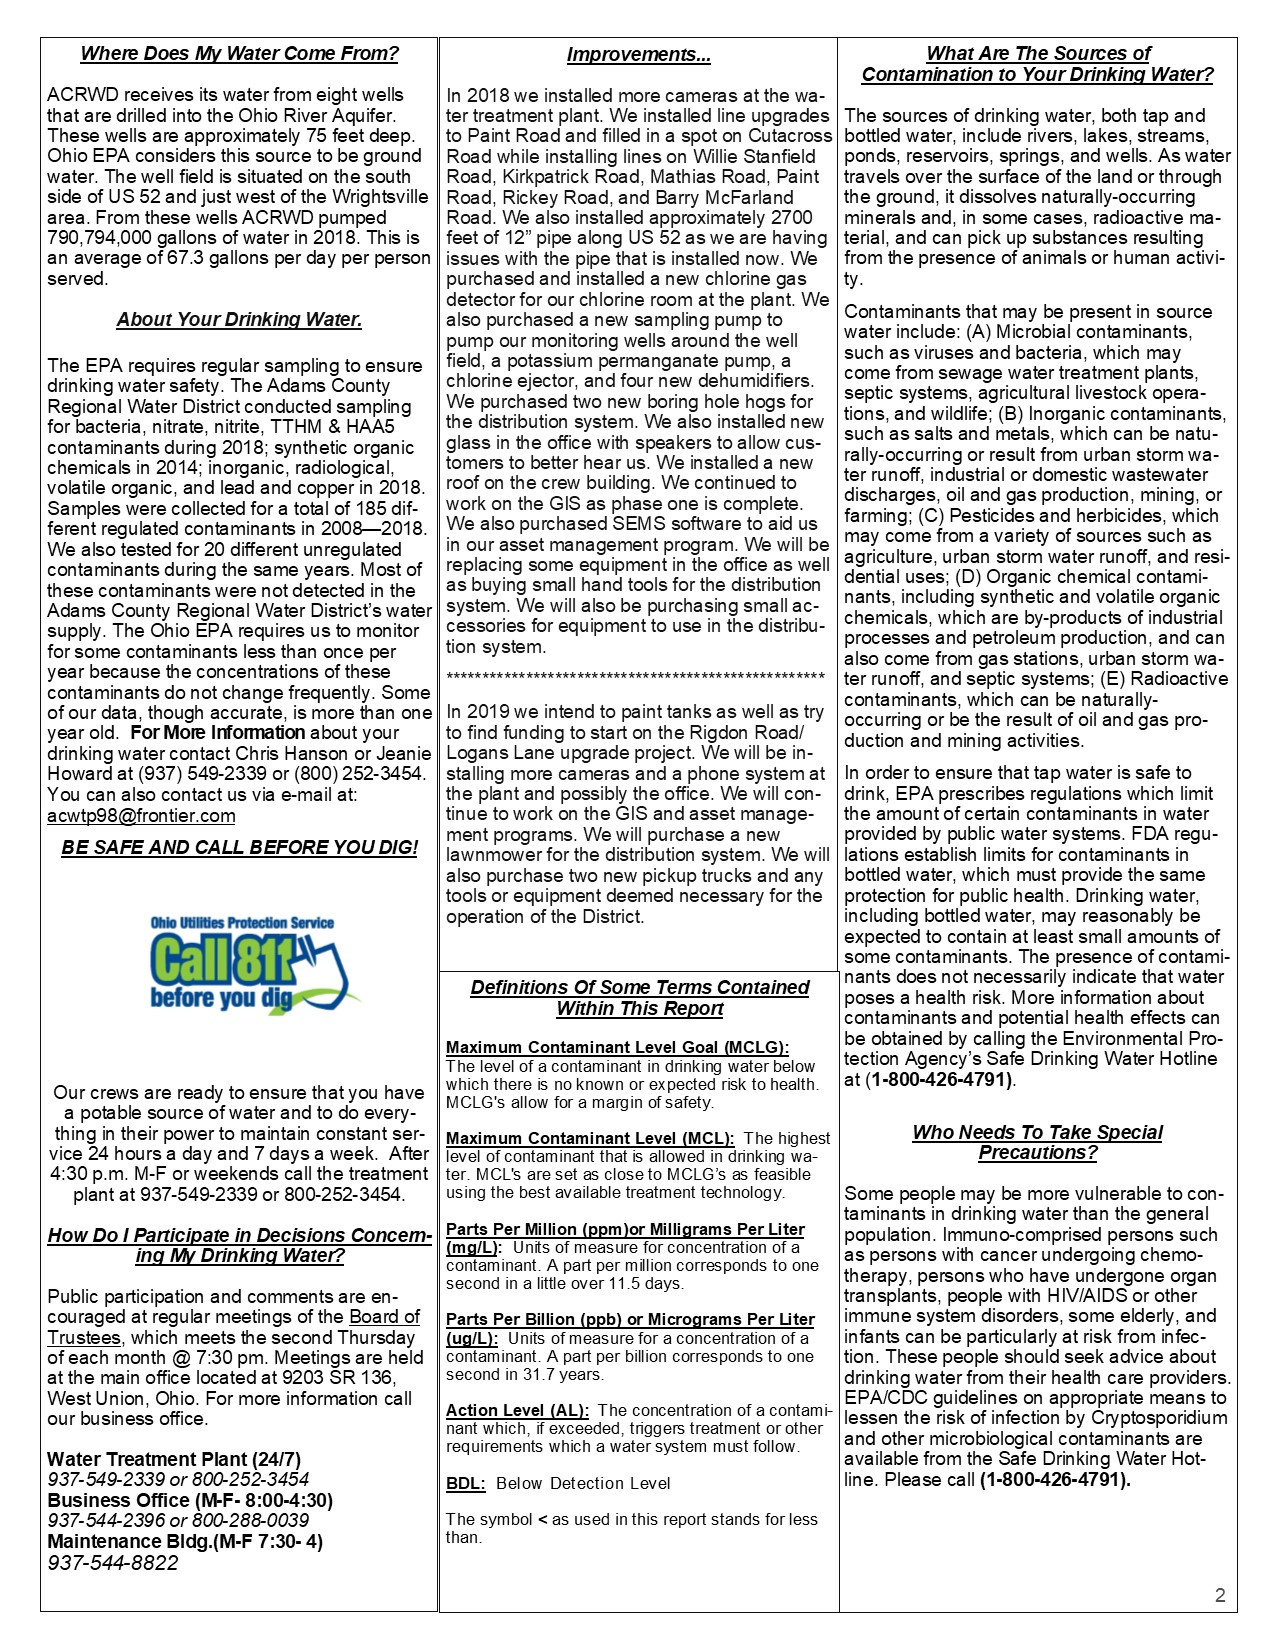 CCR page 2